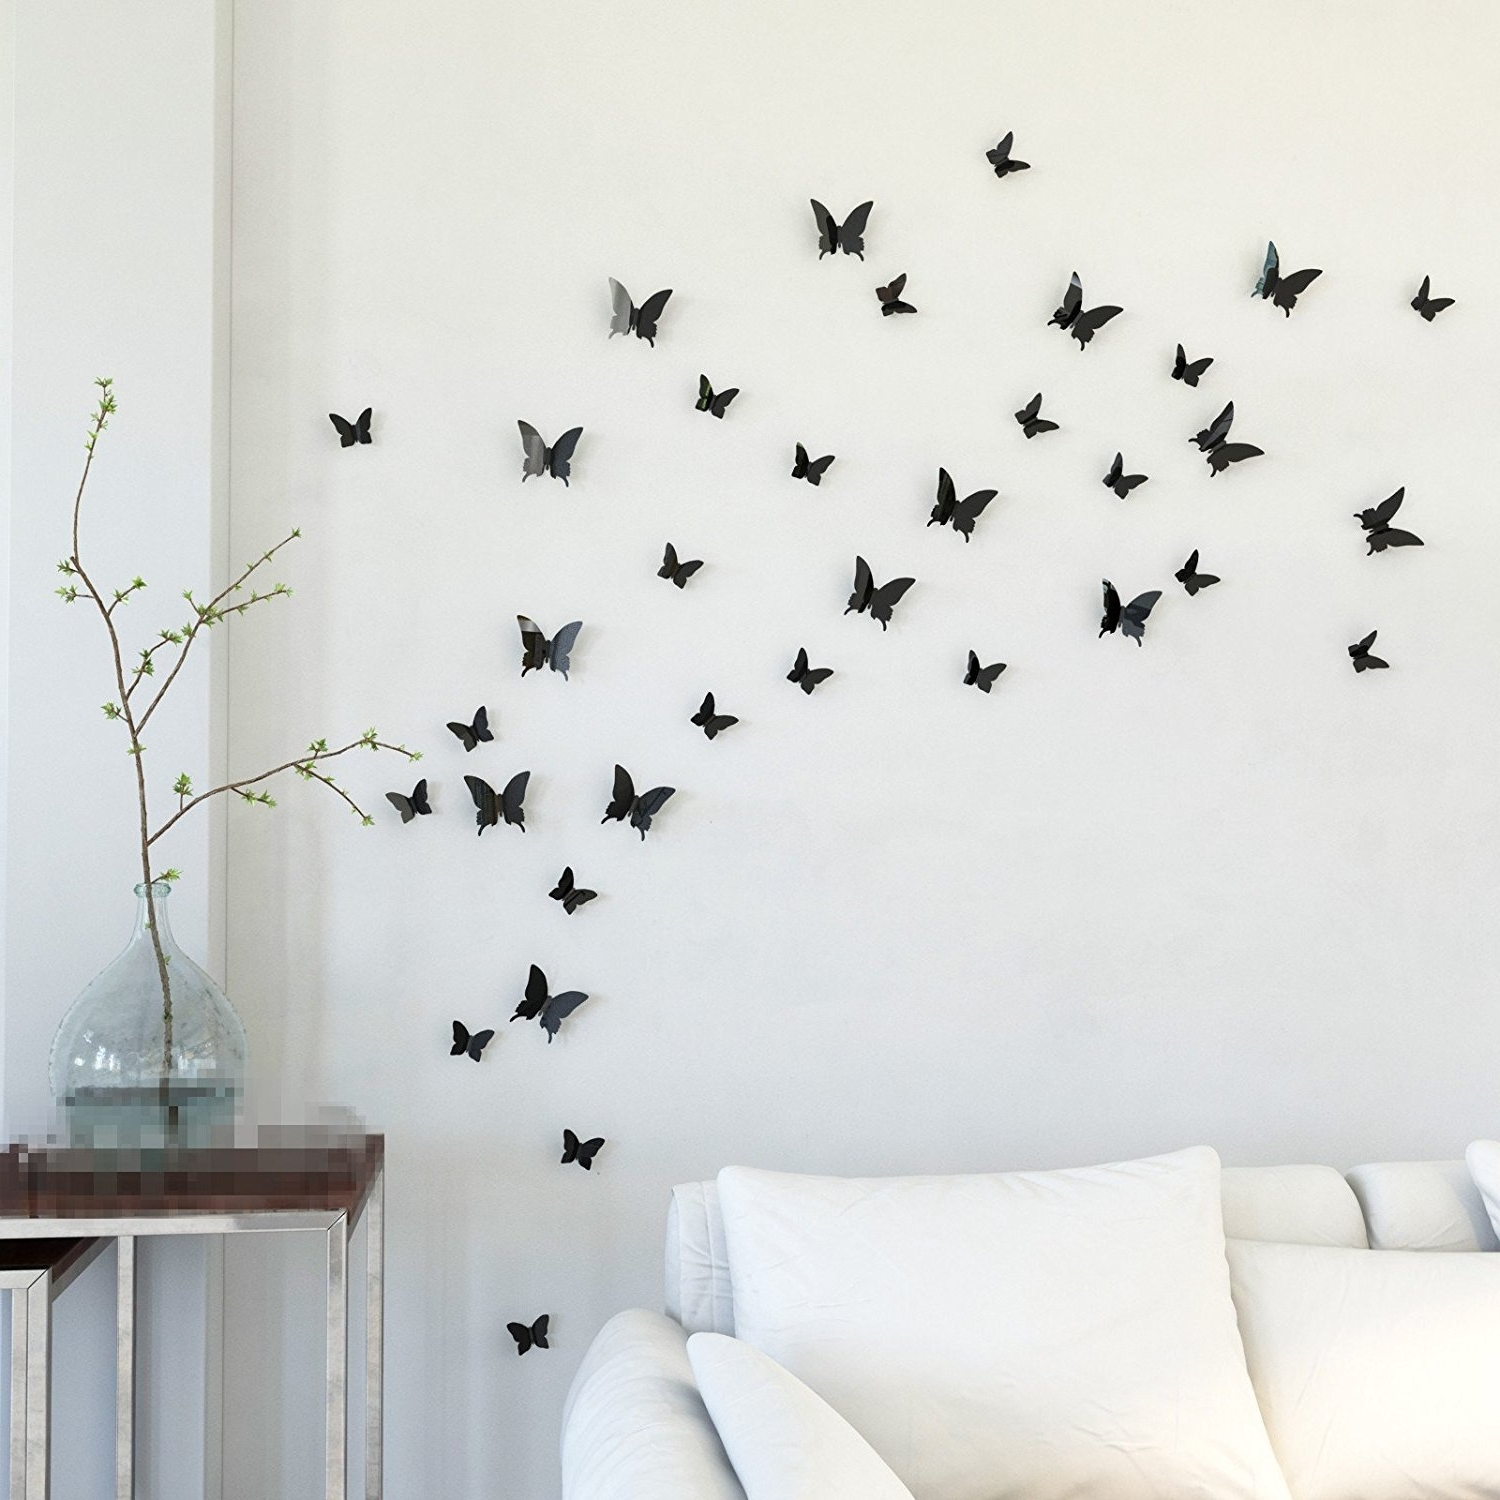 White 3D Butterfly Wall Art Regarding Most Up To Date Serene Wall Decor Butterfly And Butterfly In Wall Decor Trellisago (View 11 of 15)